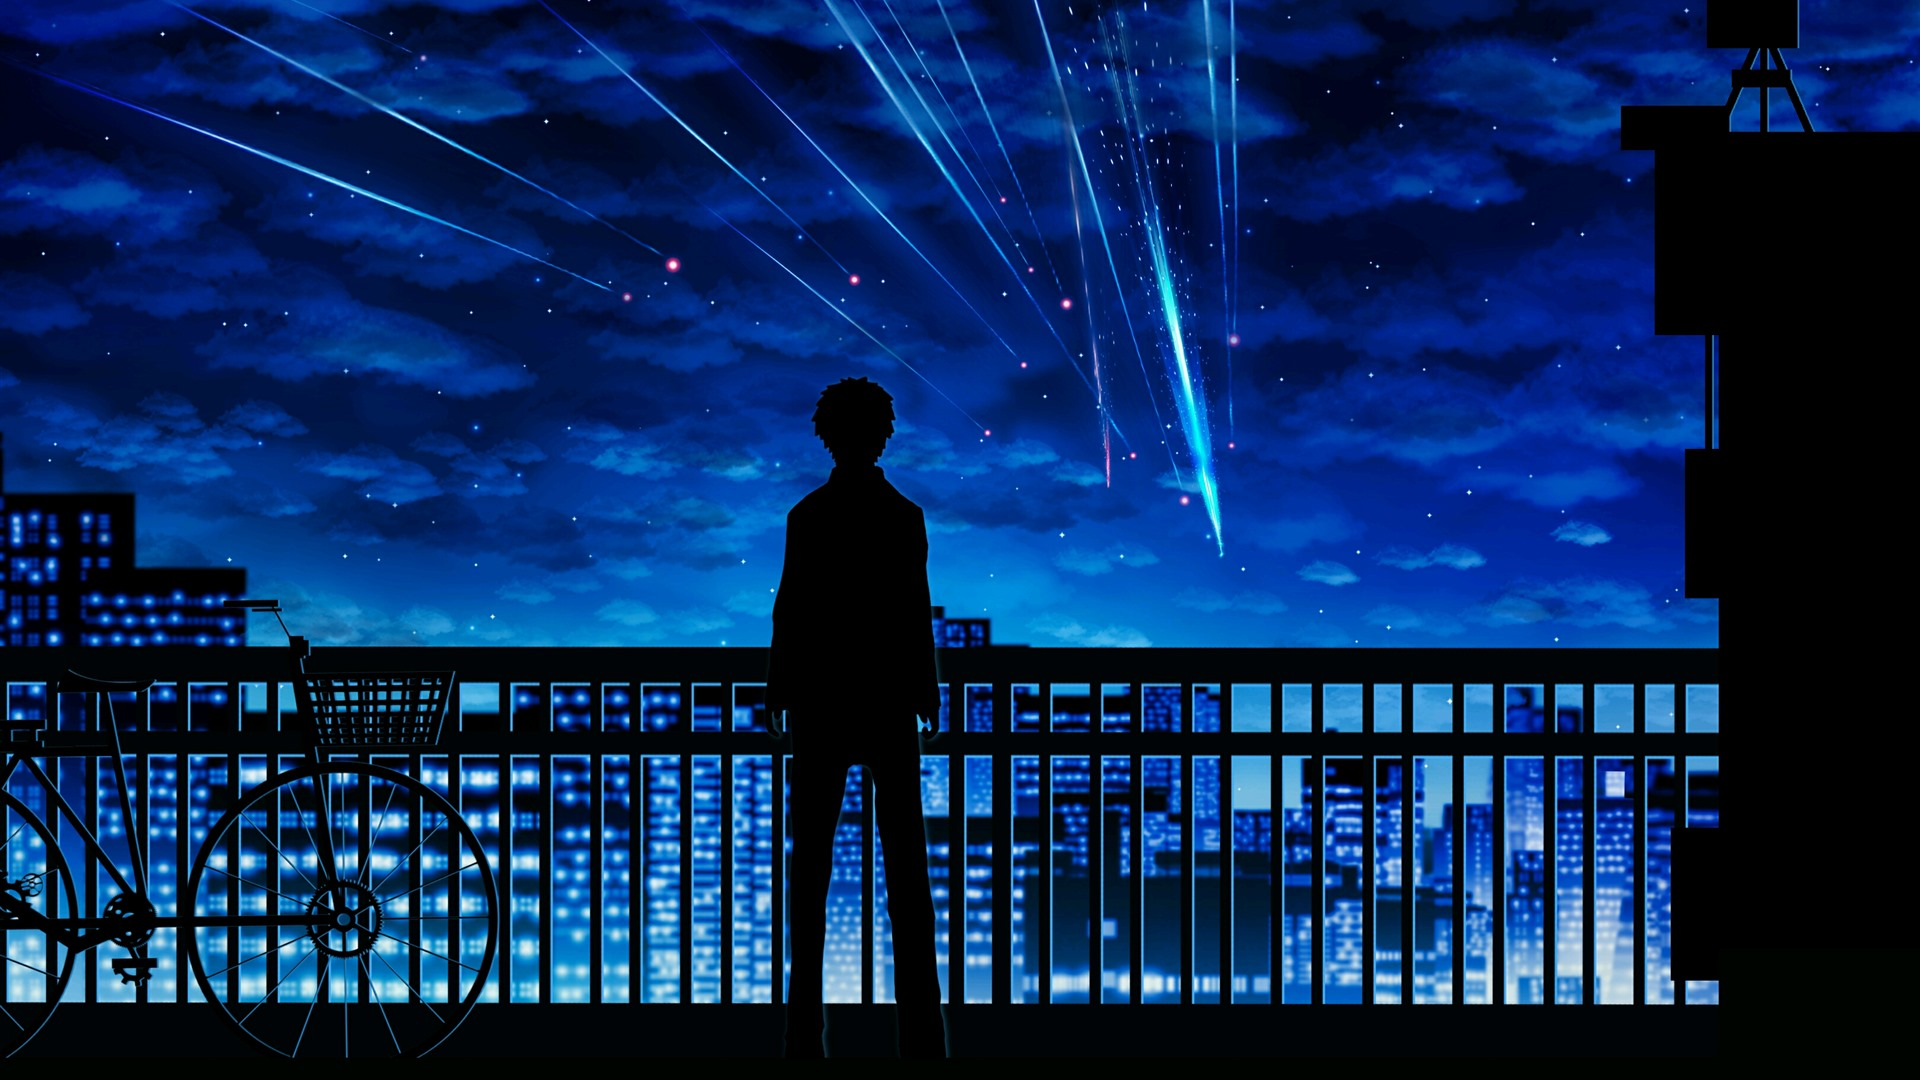 Wallpaper Your Name Meteor Boy Silhouette Fence Bike 2880x1800